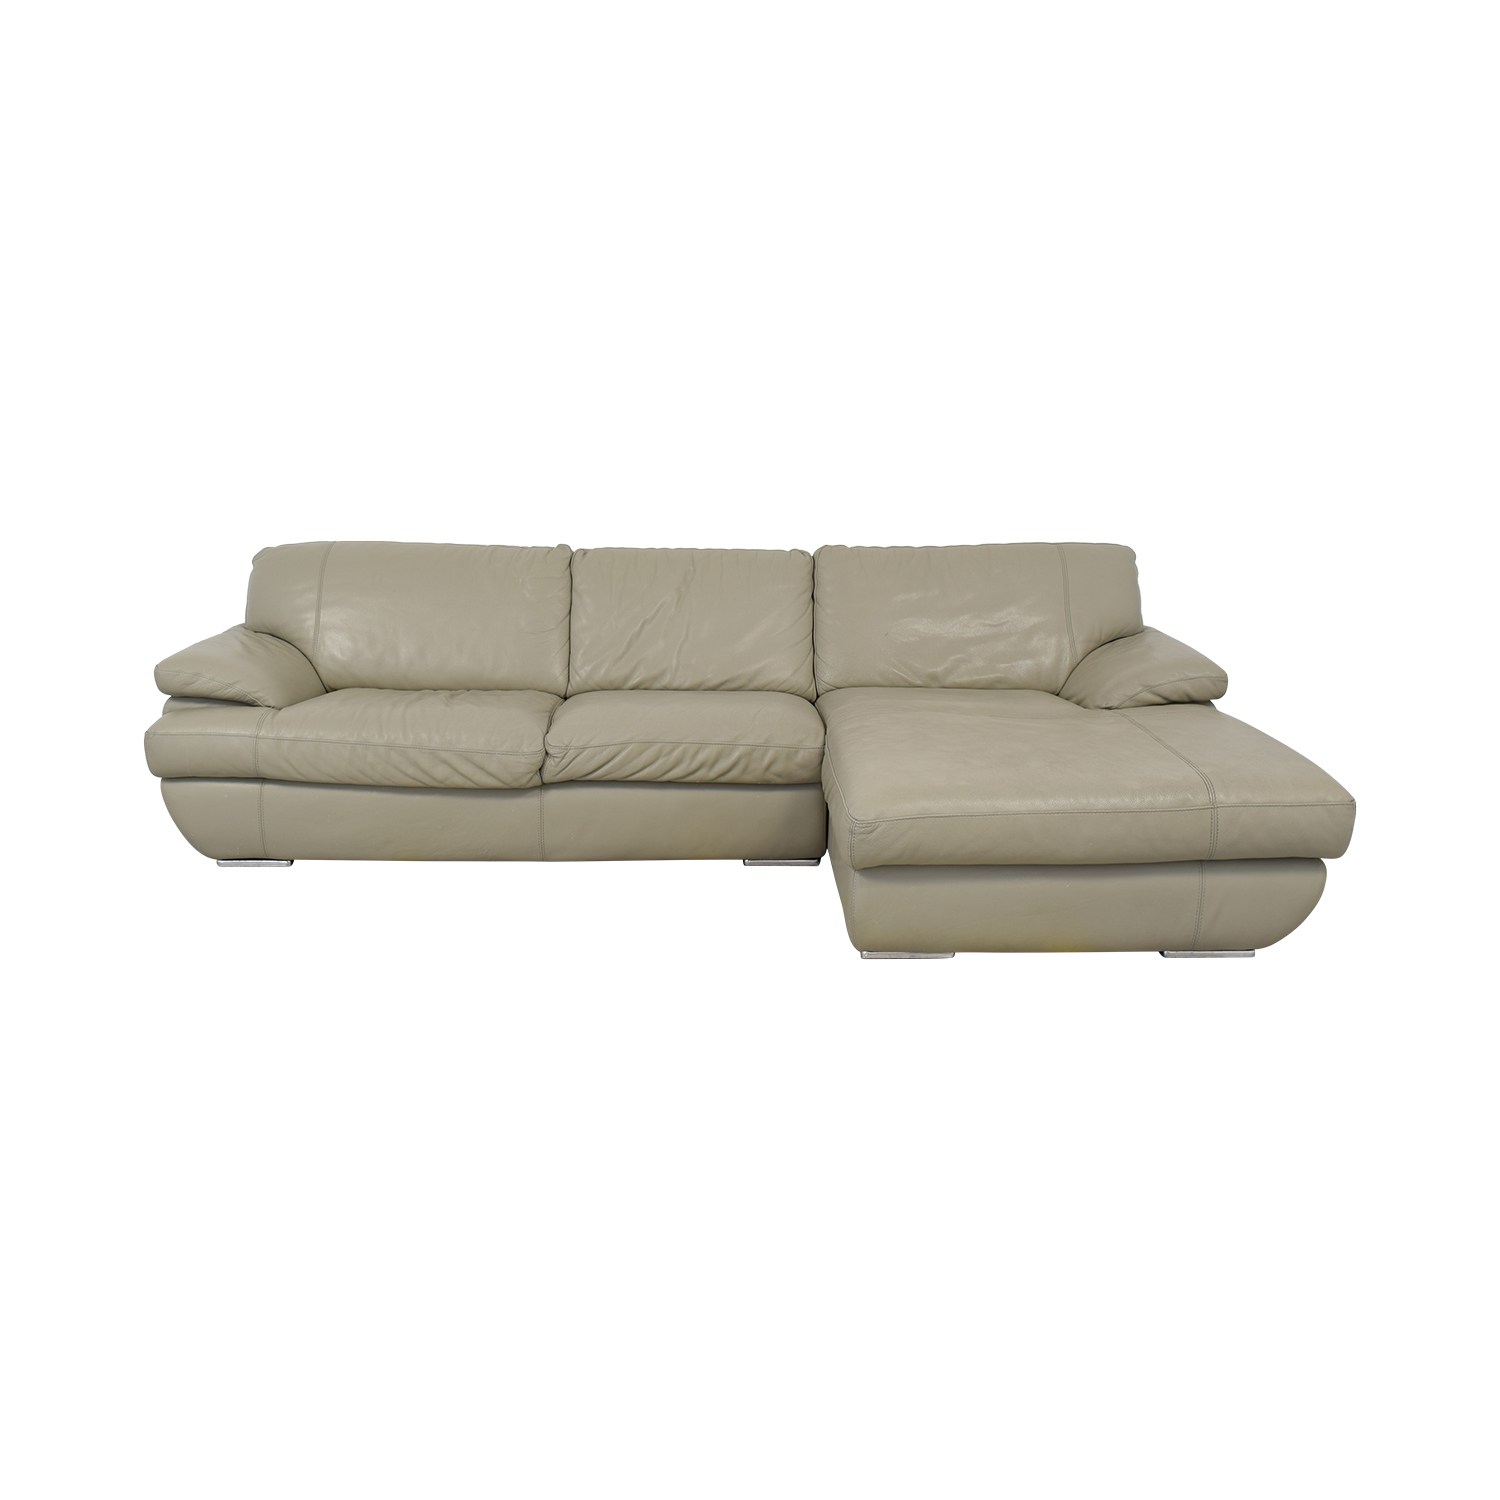 shop Bloomingdale's Gray Leather Sofa Bloomingdale's Sofas